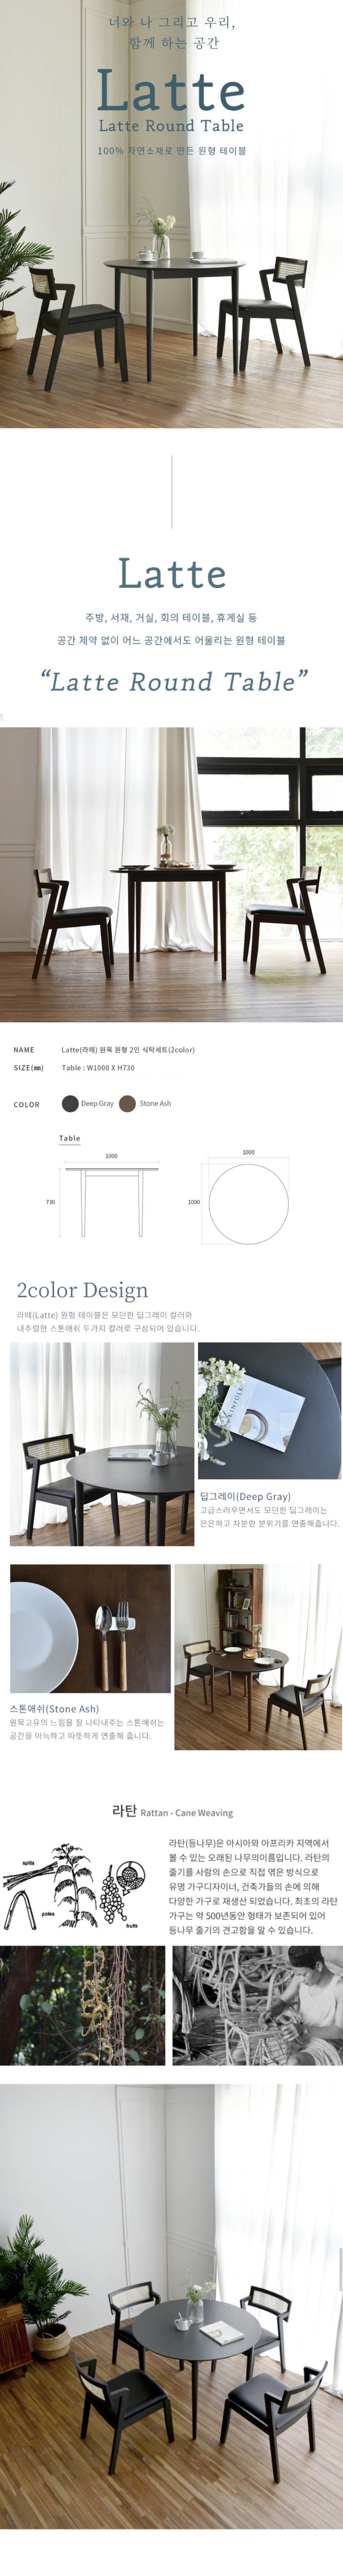 Latte_Round_Table_specs_by_born_in_colour